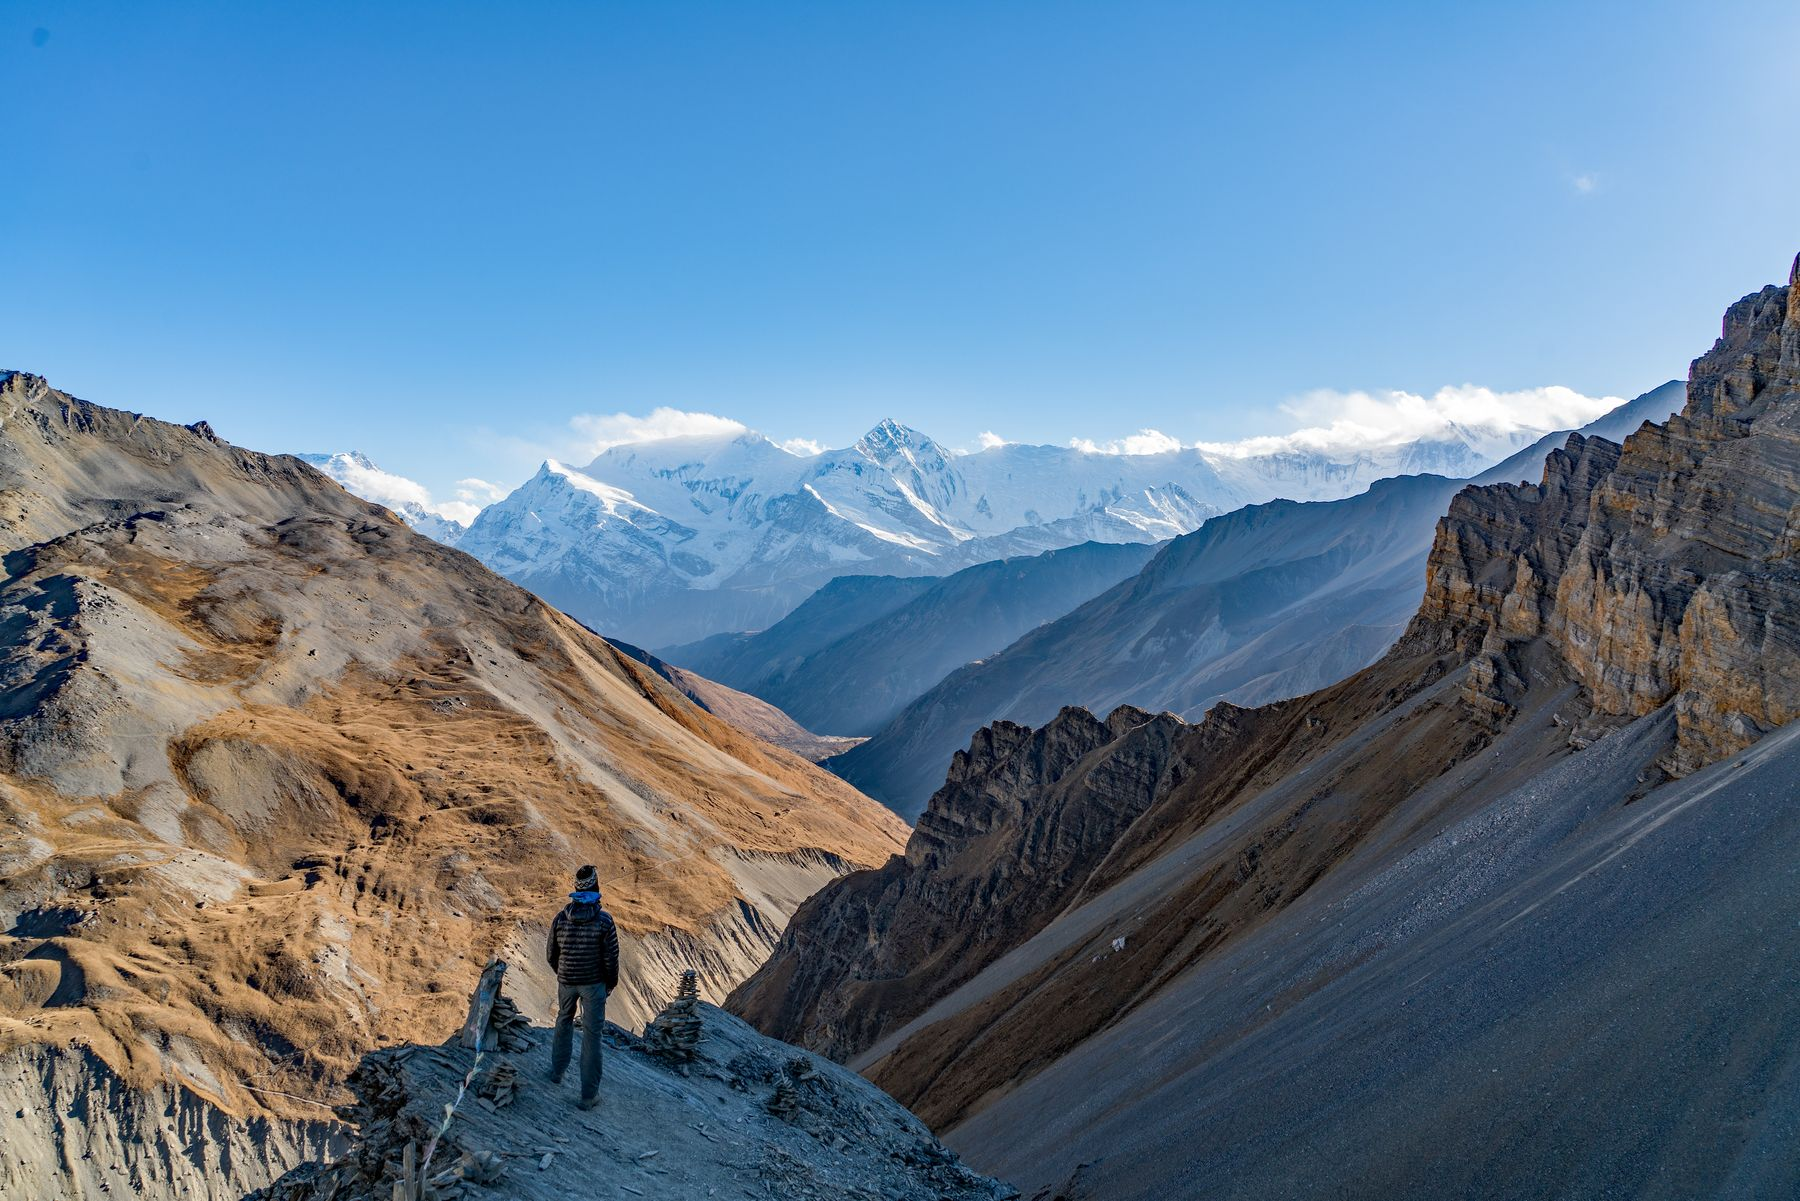 hiking from a distance looking out on a mountain range in Nepal, a dream destination